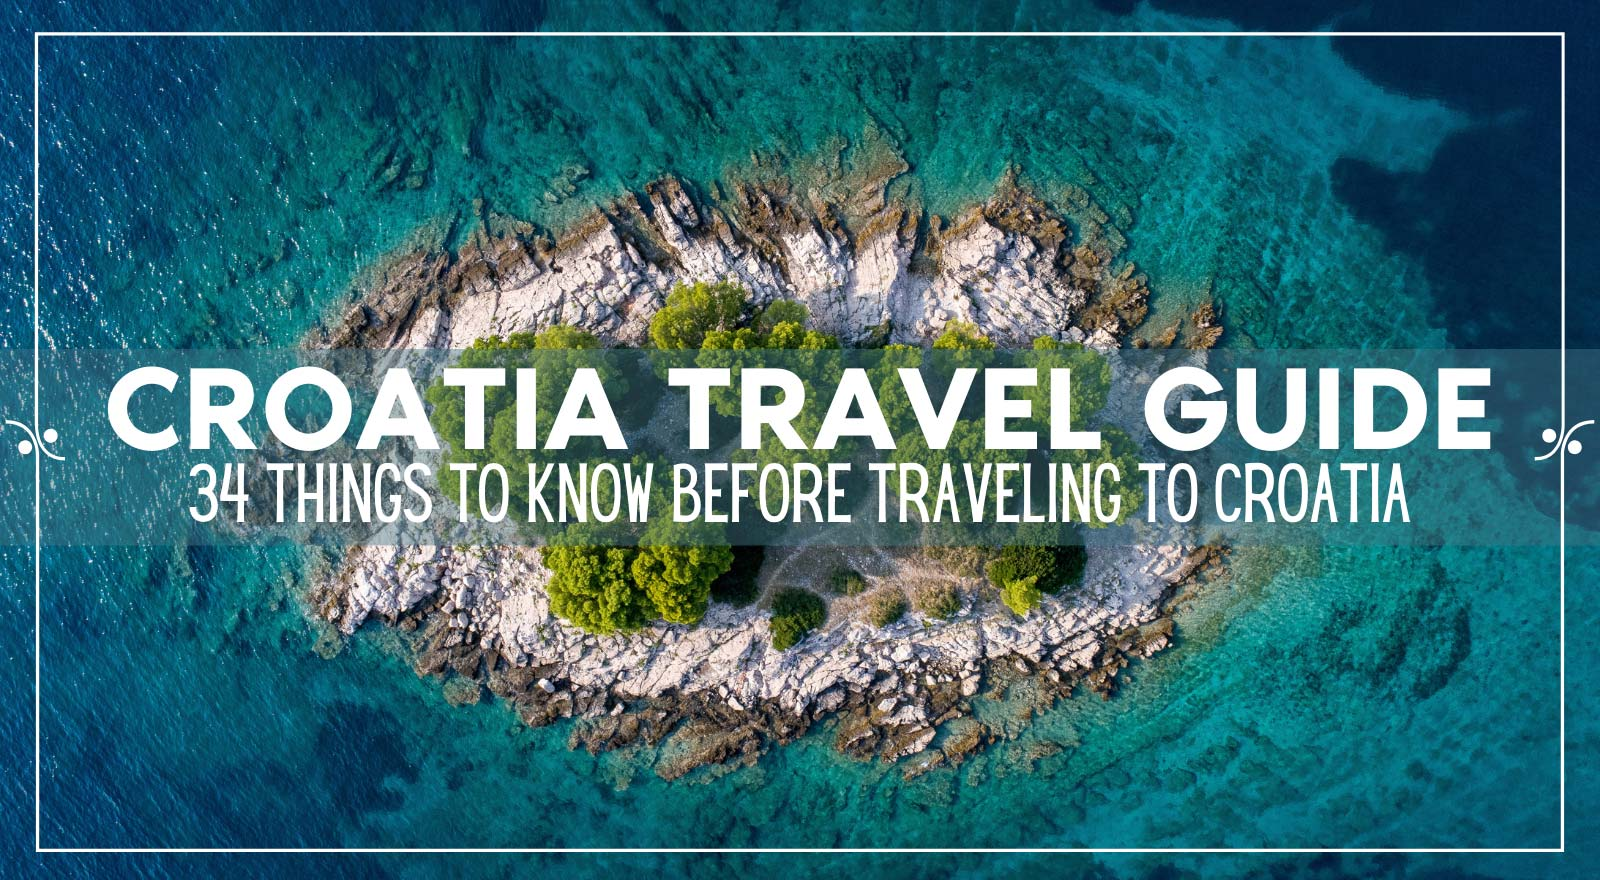 Croatia Travel Guide | 34 Things To Know Before Traveling To Croatia, Illustration